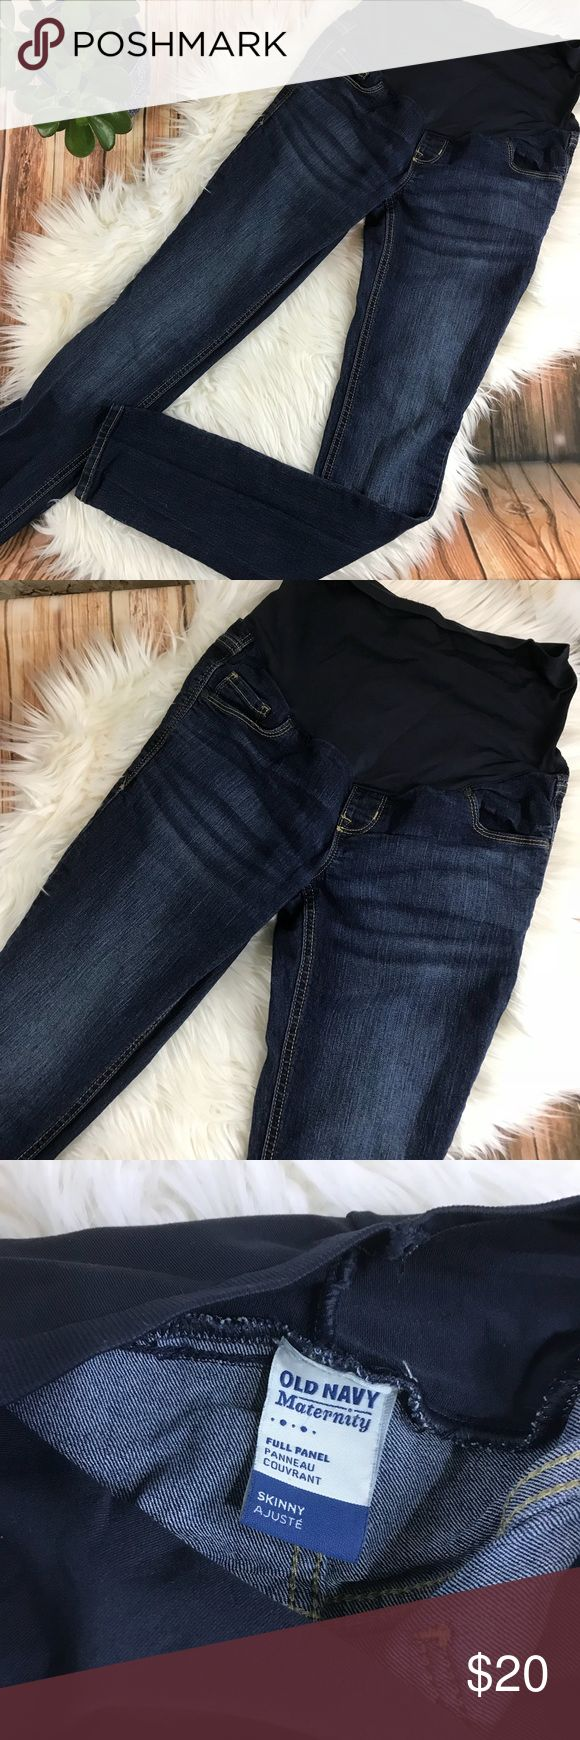 Old navy dark maternity jeans In gently used condition. Dark wash maternity skinny jeans from Old Navy. Wide elastic band to go over the tummy. Size 6 Old Navy Jeans Skinny